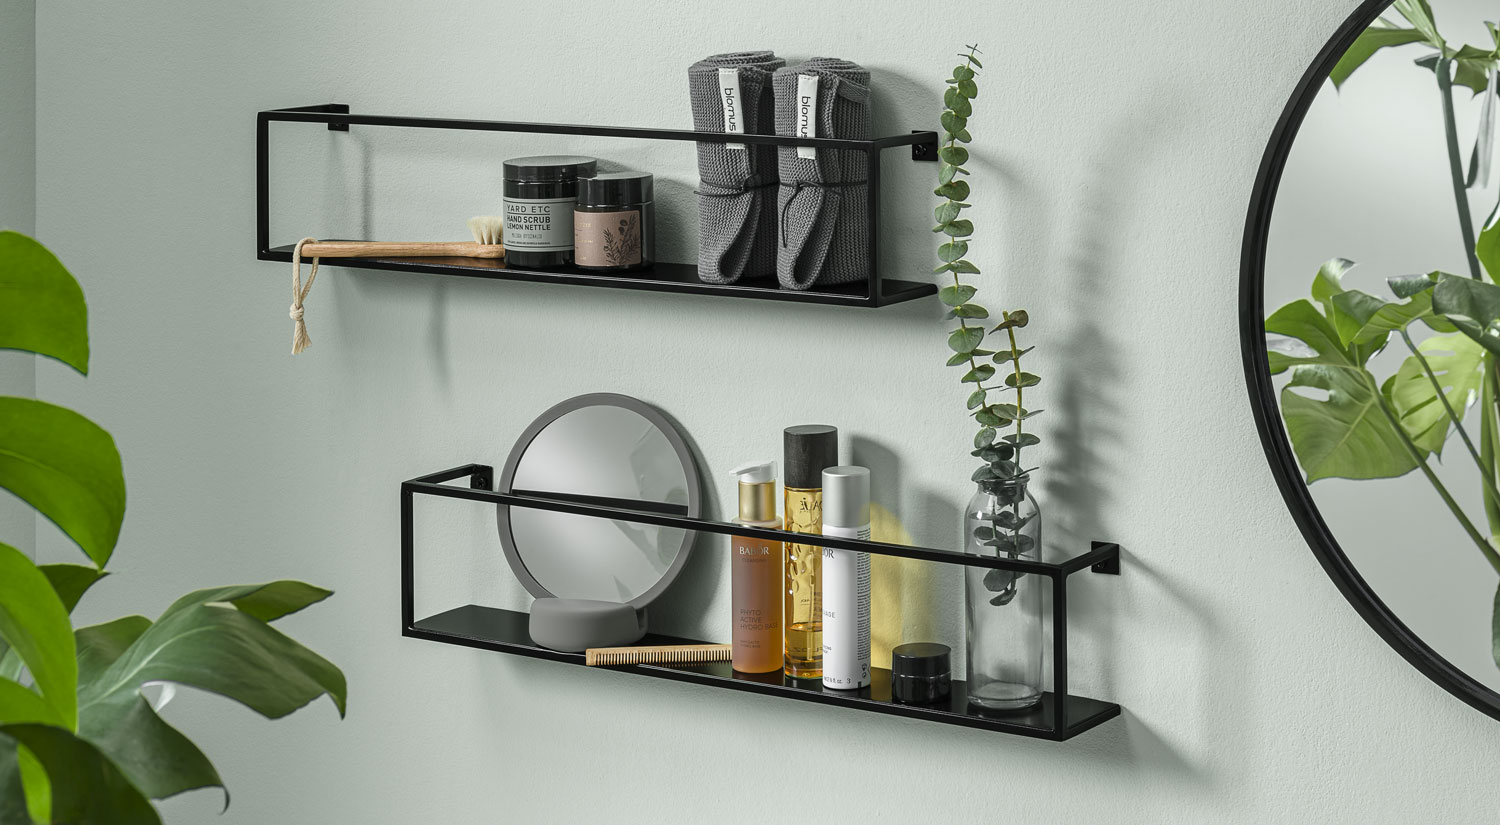 Bathroom Shelves Shop Conveniently Online Regalraum